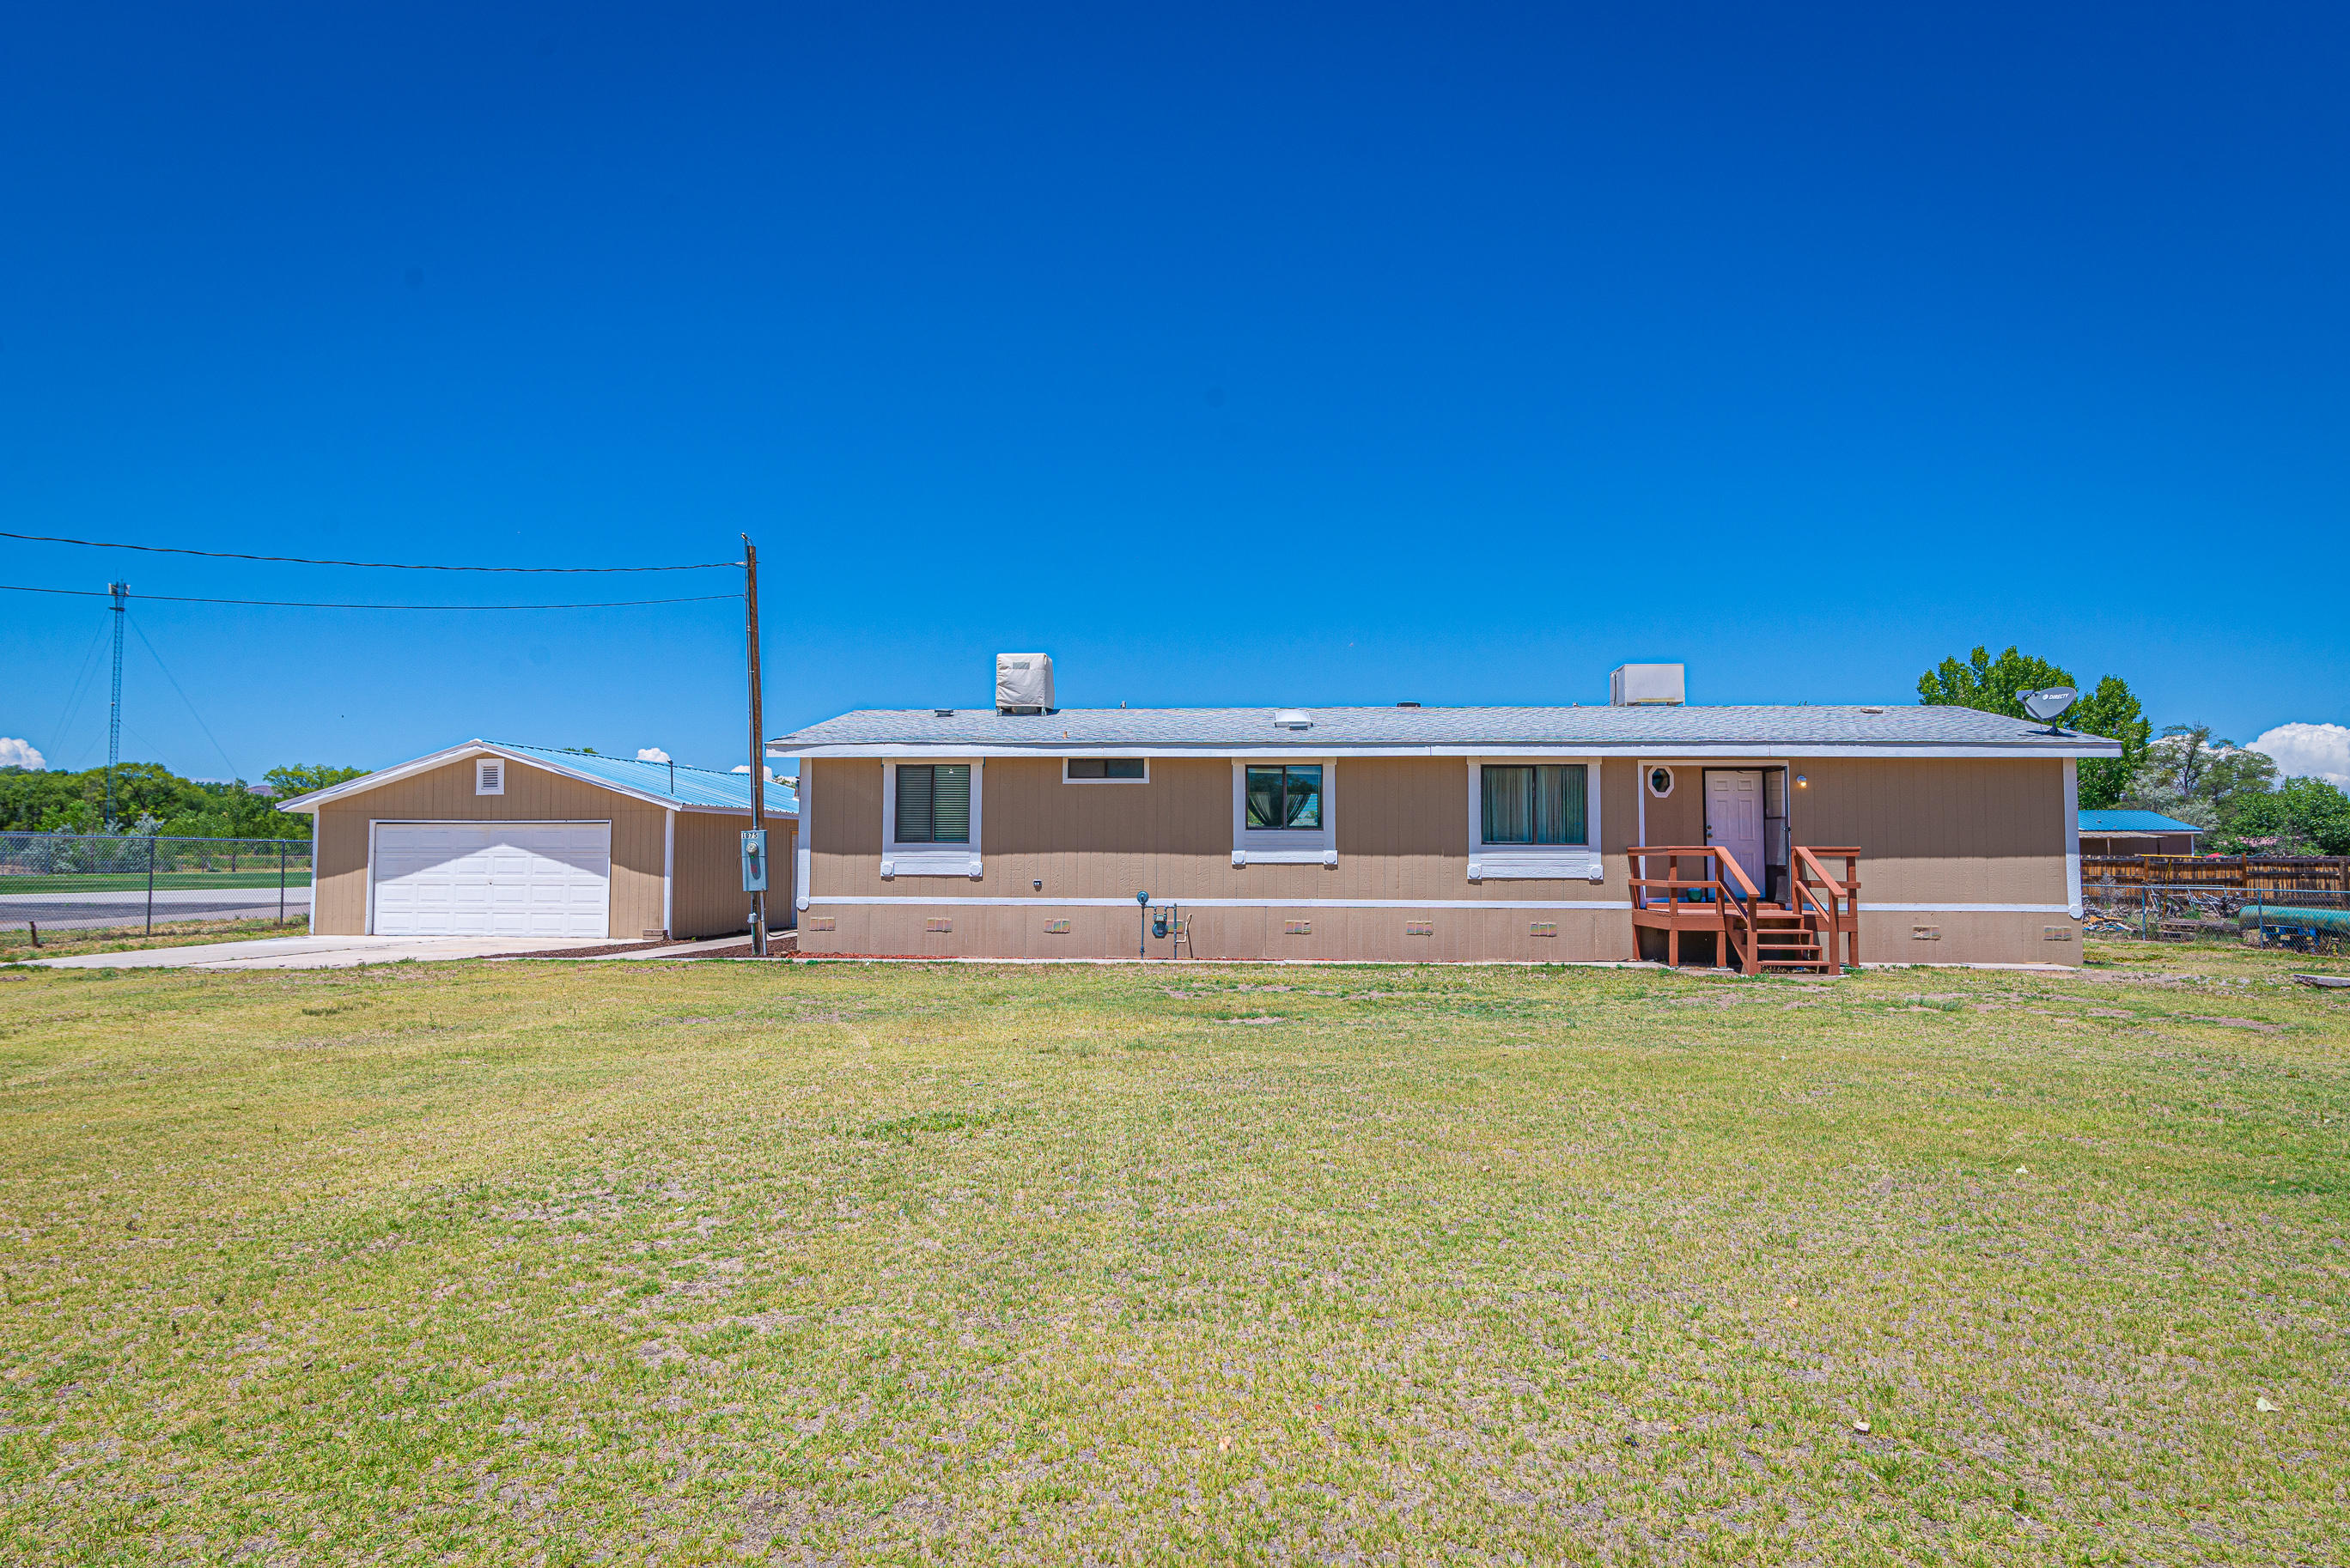 Located in the heart of Los Lunas is this well maintained home sitting on half an acre.  Split master bedroom with full bathroom, separate garden tub and shower.  Two way fireplace which can be enjoyed from the living room or dining area. Kitchen is equipped with a cook top, built-in oven, refrigerator and lots of cabinets! Home has  built in cabinetry. Full laundry room and detached two car garage. Located next to the park!